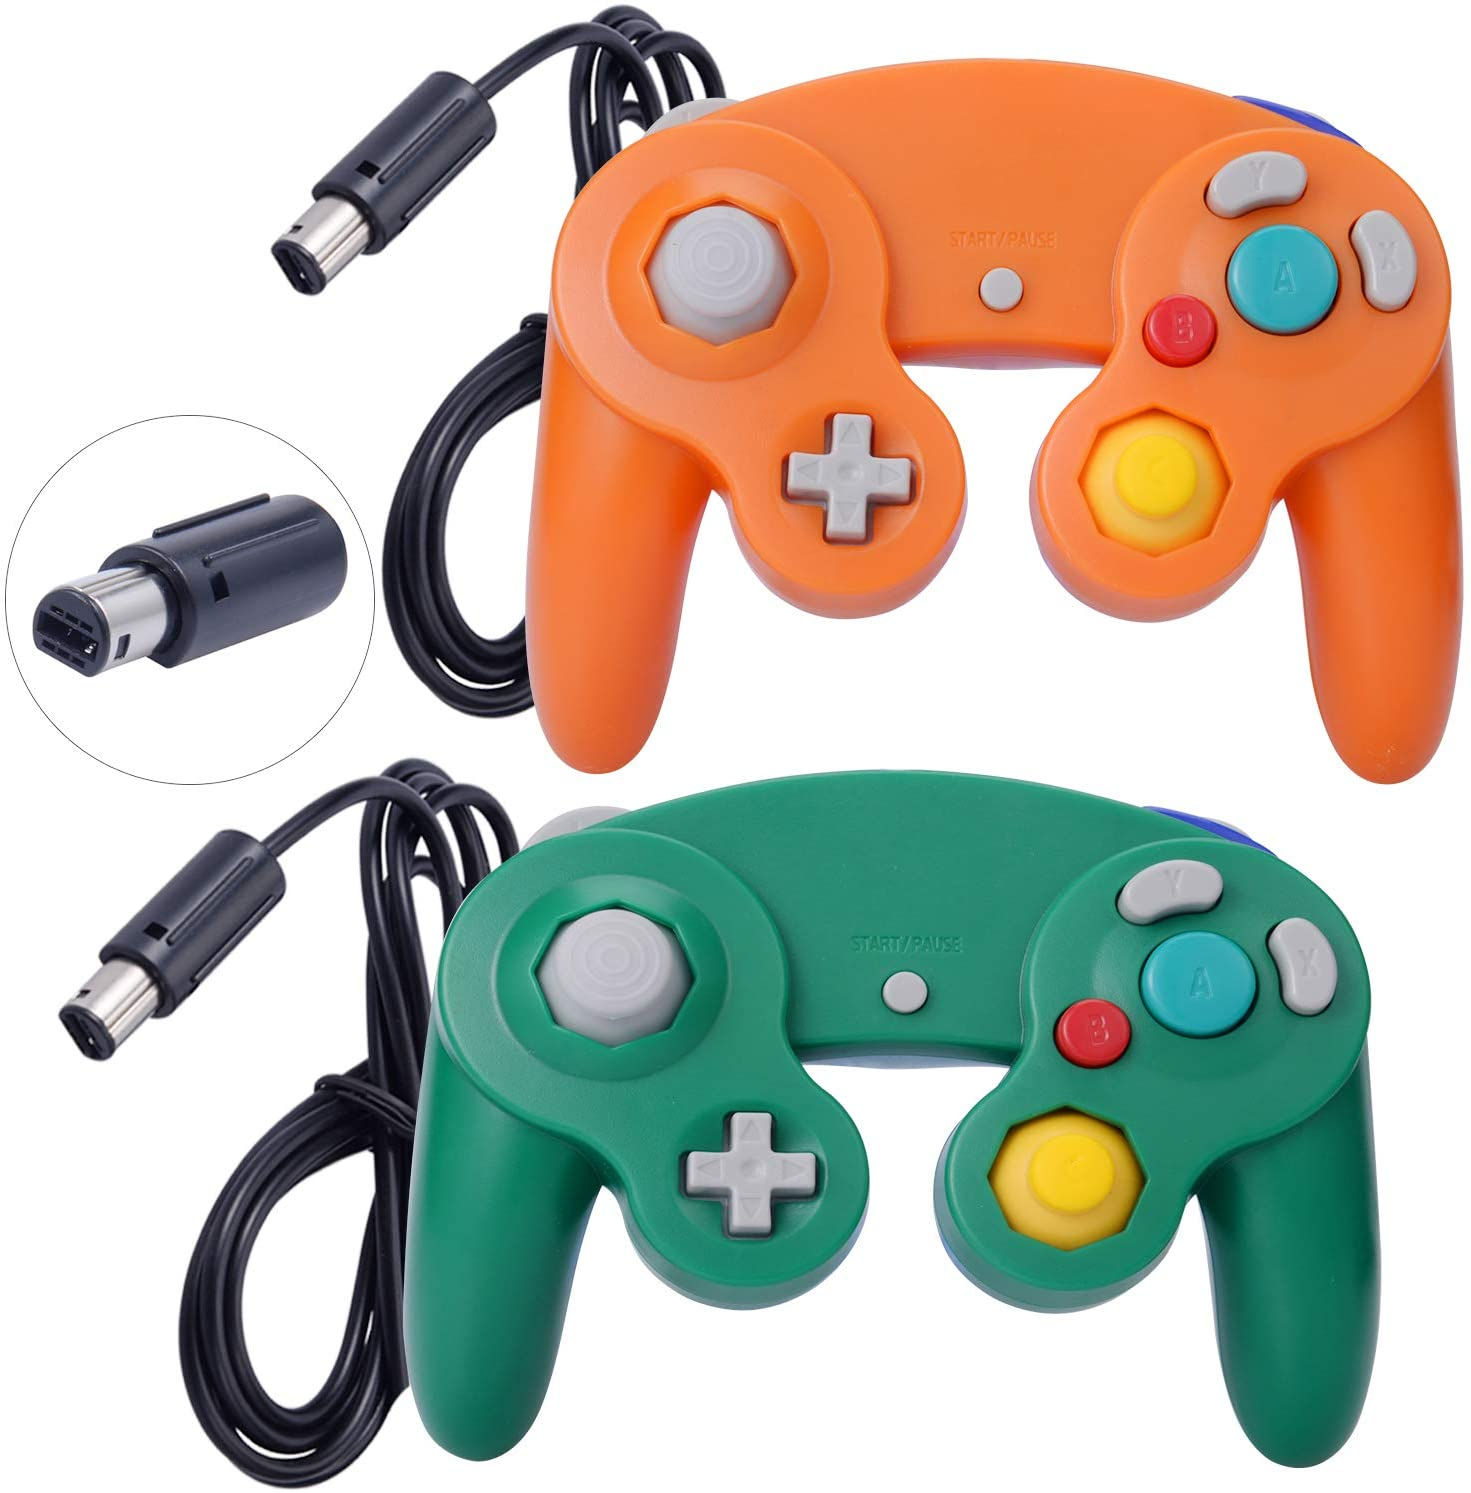 ONE250 2 Pack Classic Shock Joypad Wired Controller, Compatible with Wii NGC Gamecube Game Cube (Orange & Green)